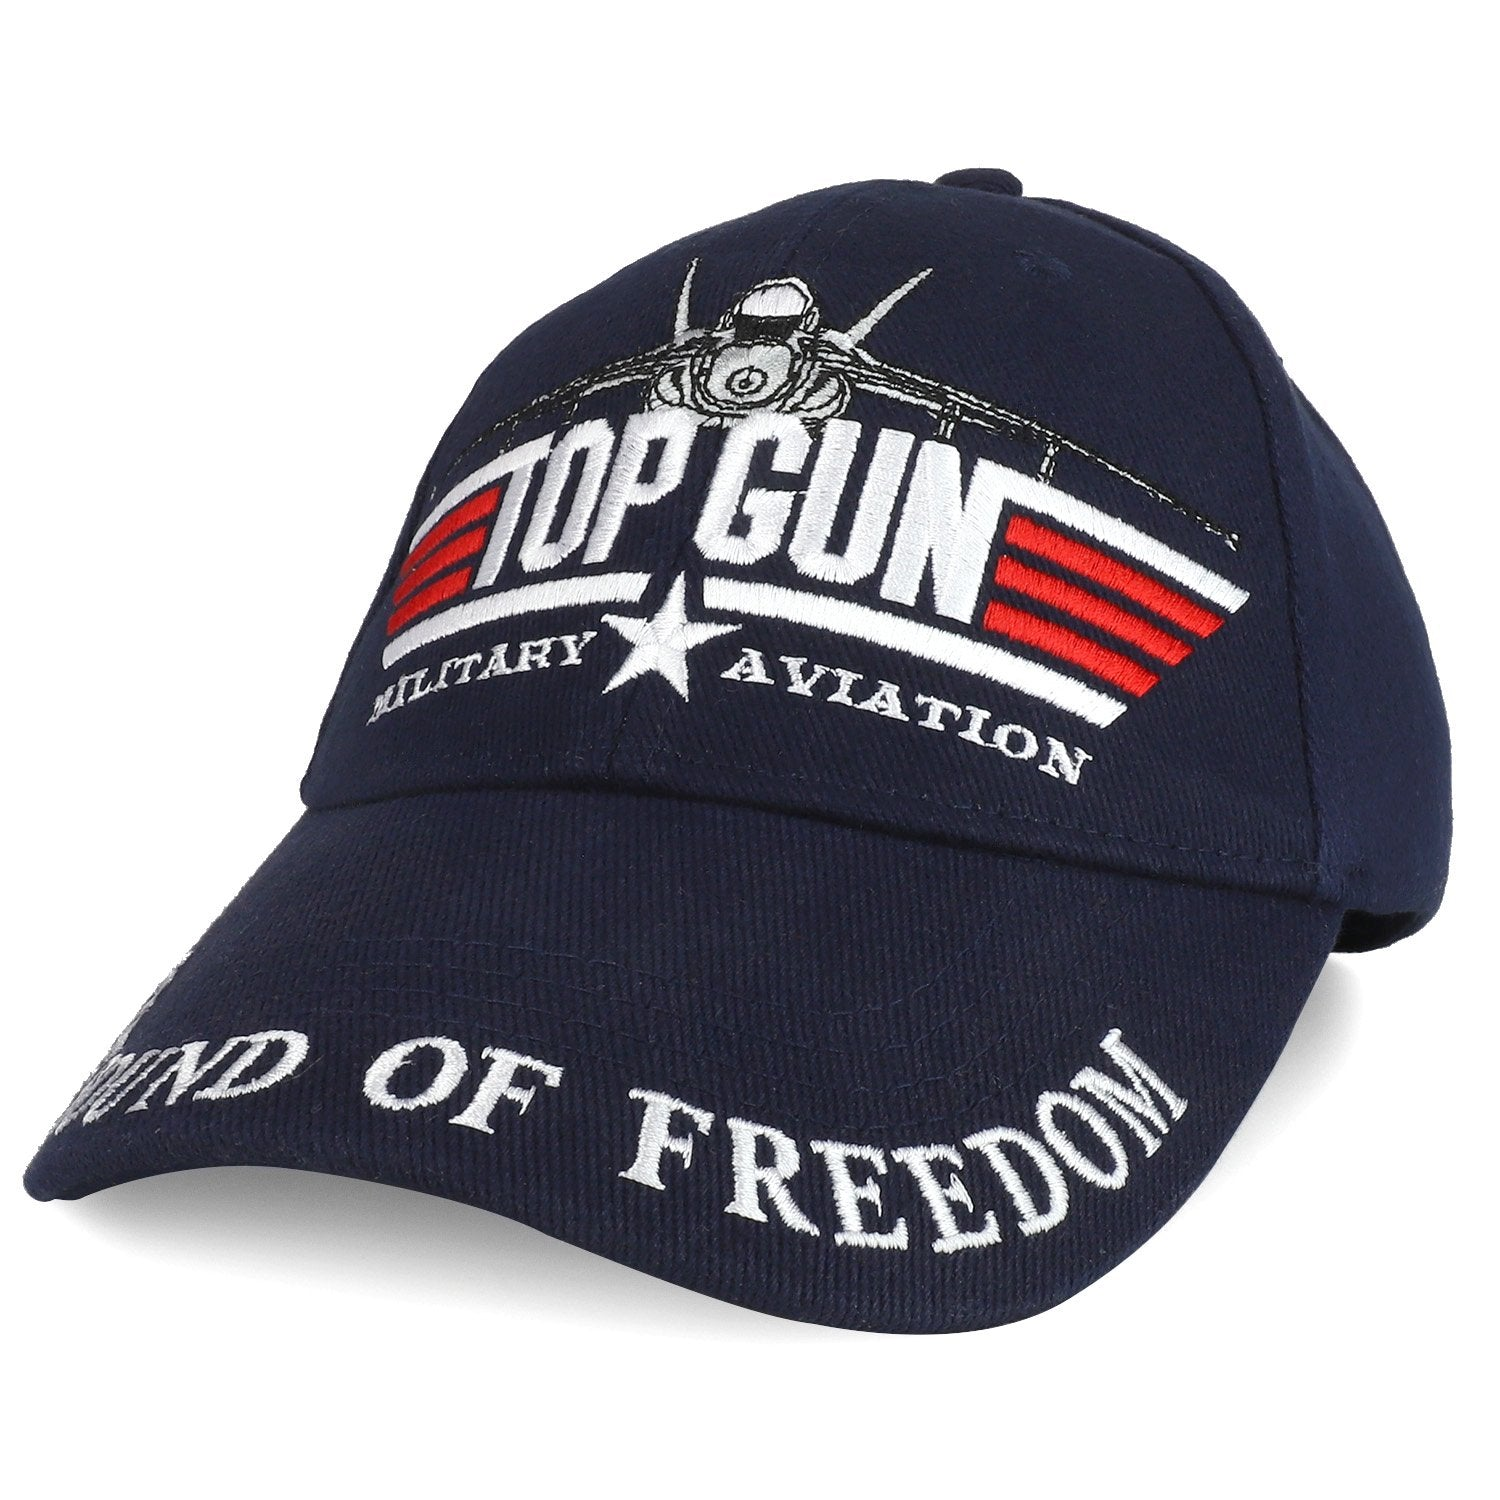 c62e1f0e395 Armycrew US Navy Top Gun Military Aviation Embroidered Adjustable Baseball  Cap